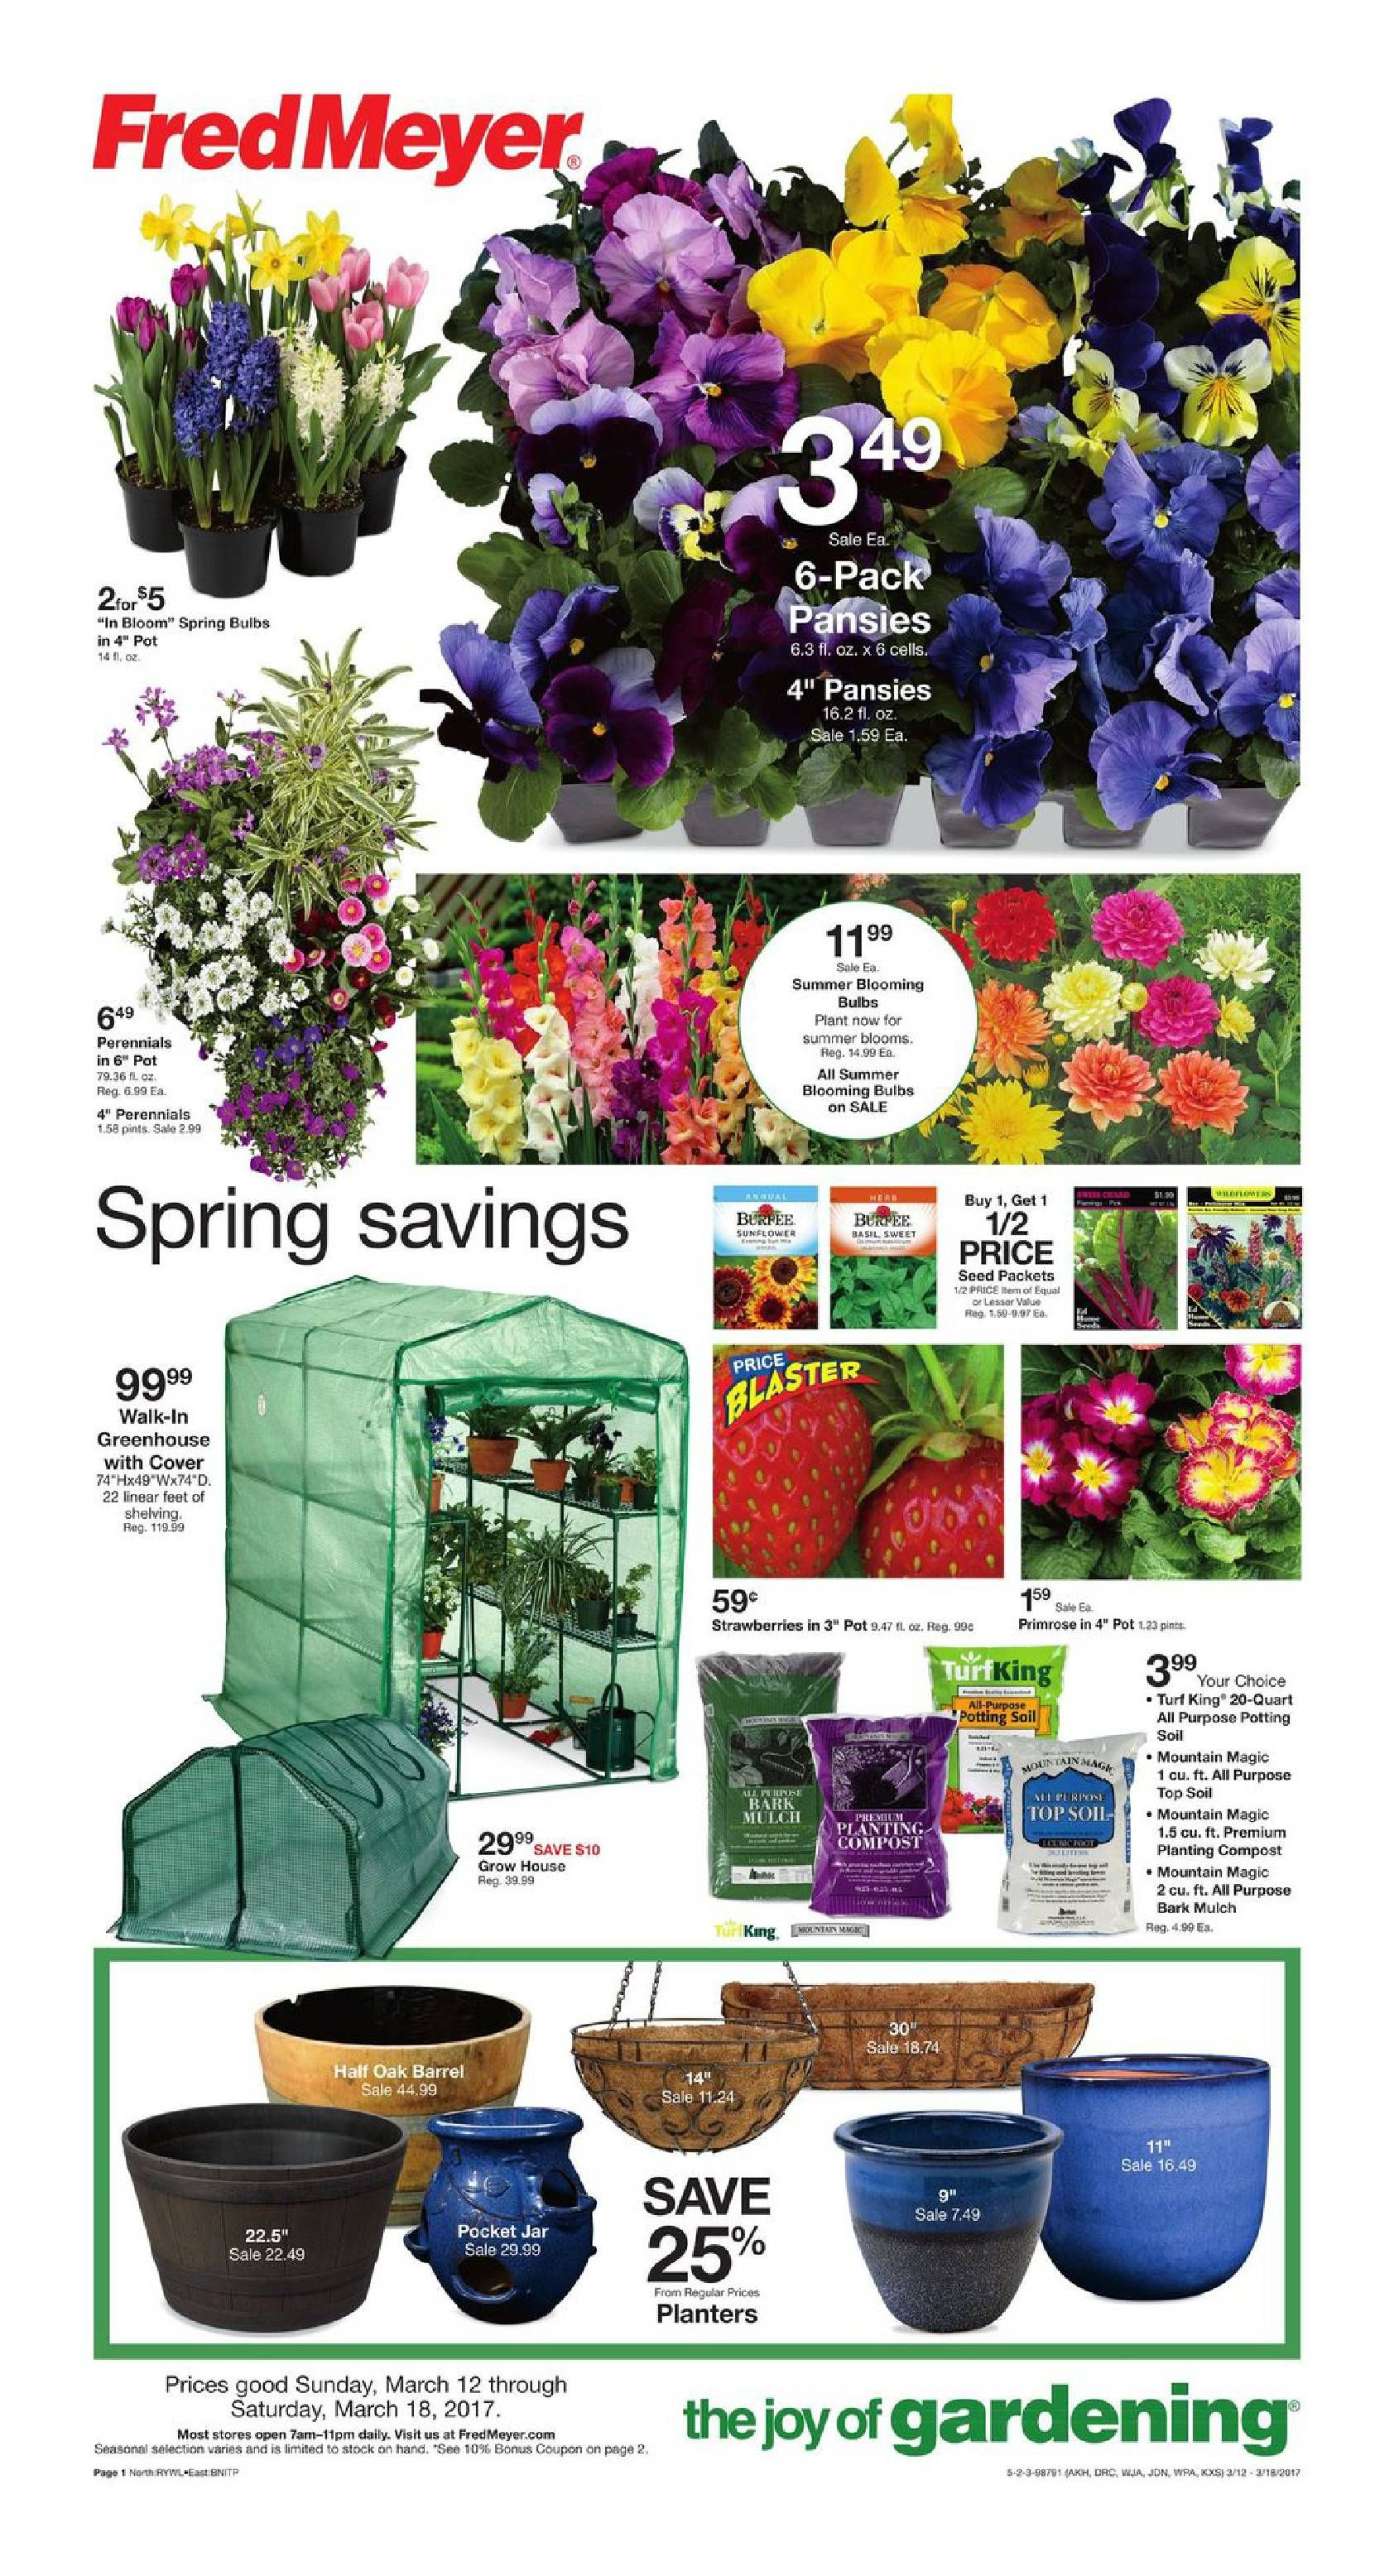 High Quality Fred Meyer Garden Center Ad March 12   18, 2017   Http://